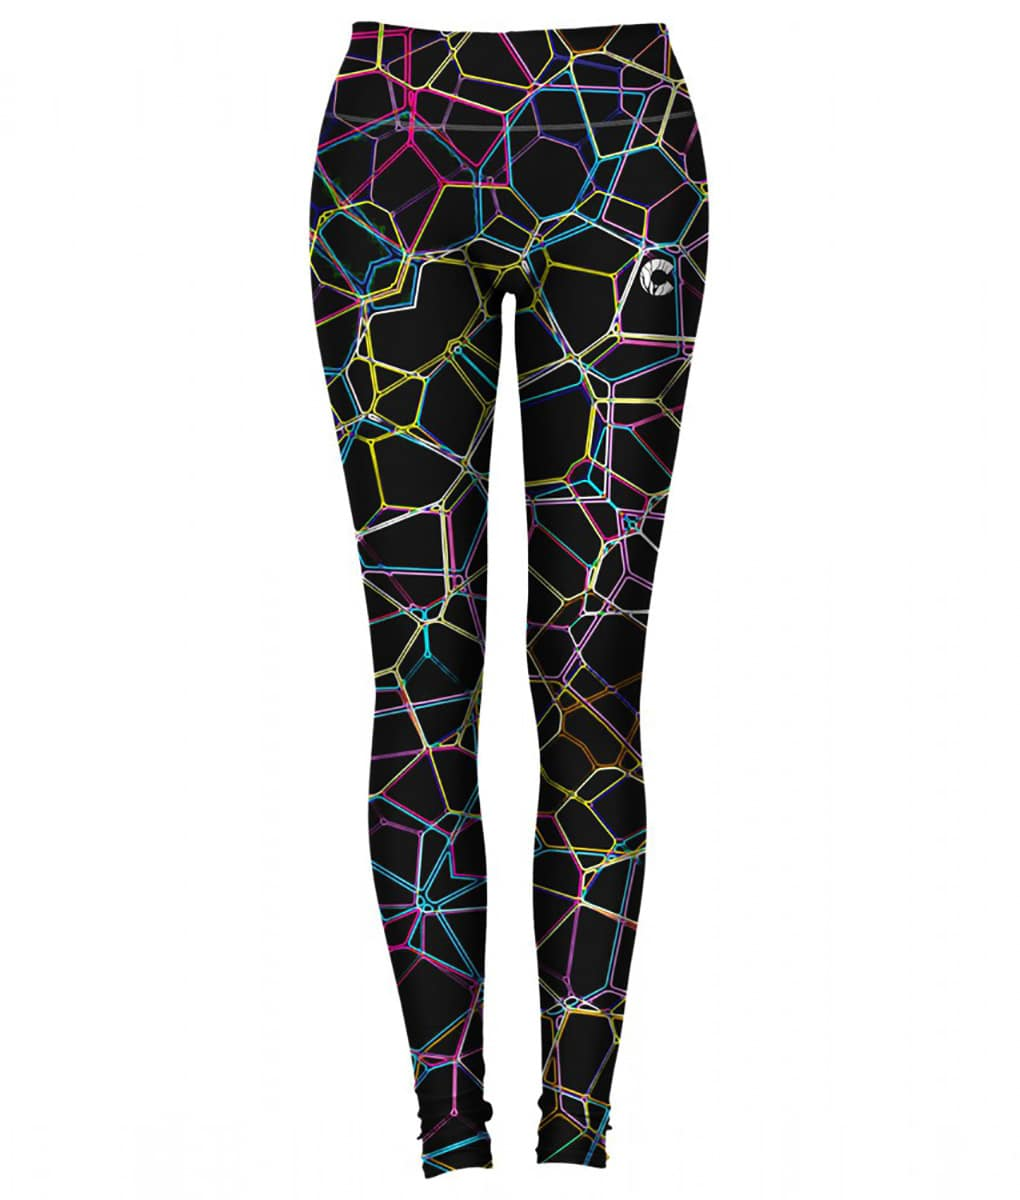 Alila Active Multi Structure workout leggings